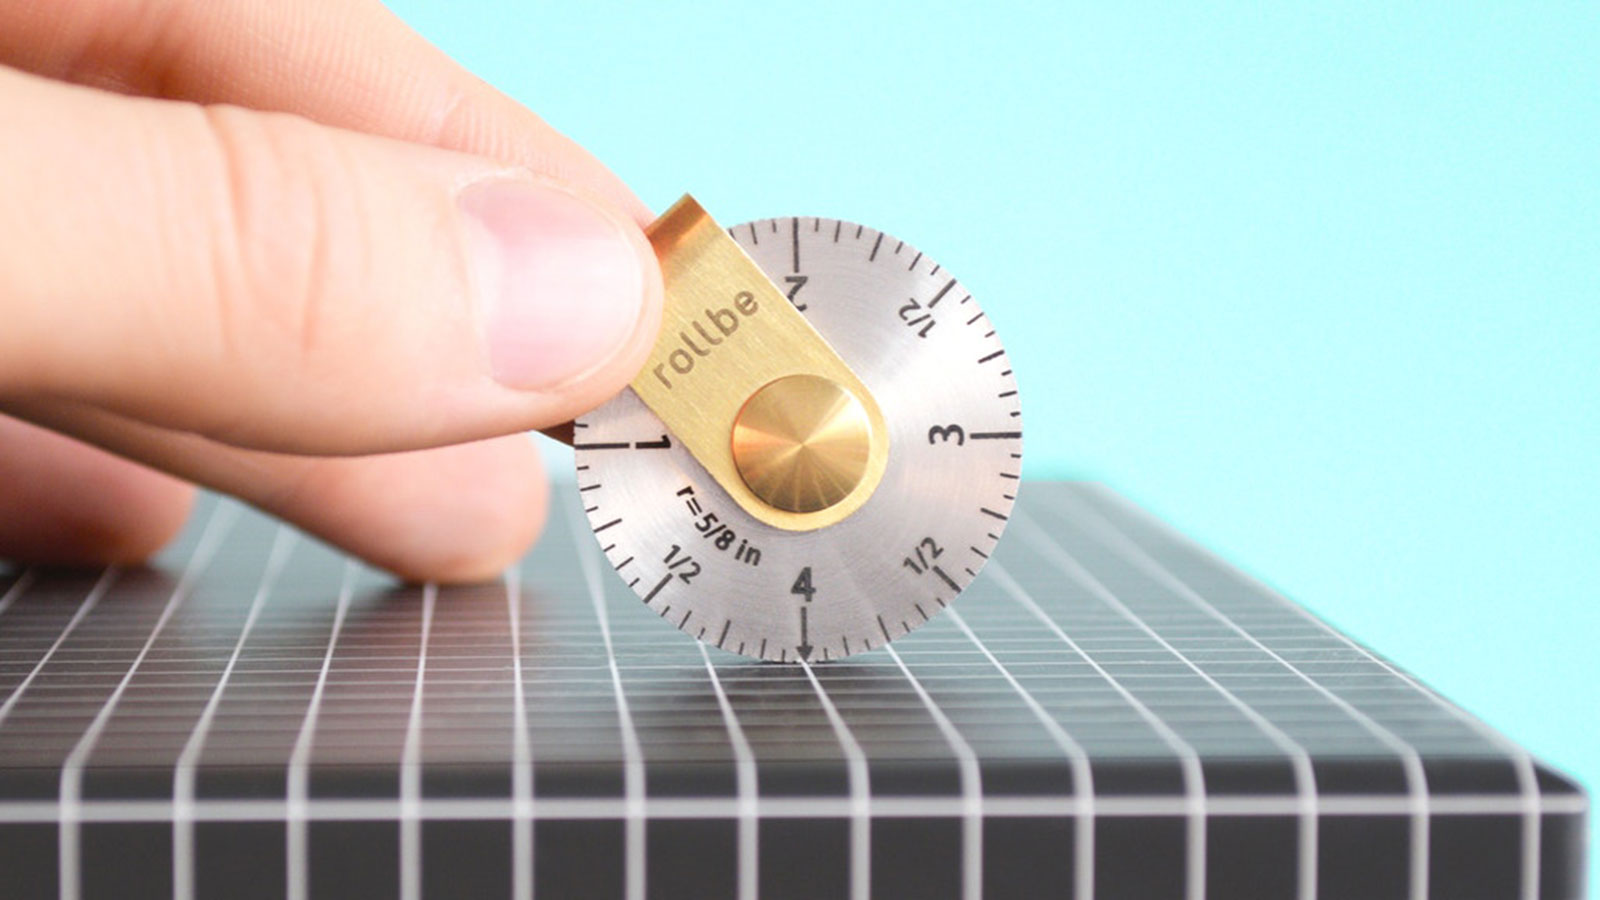 Rollbe-Super-Compact-Measuring-tool-1